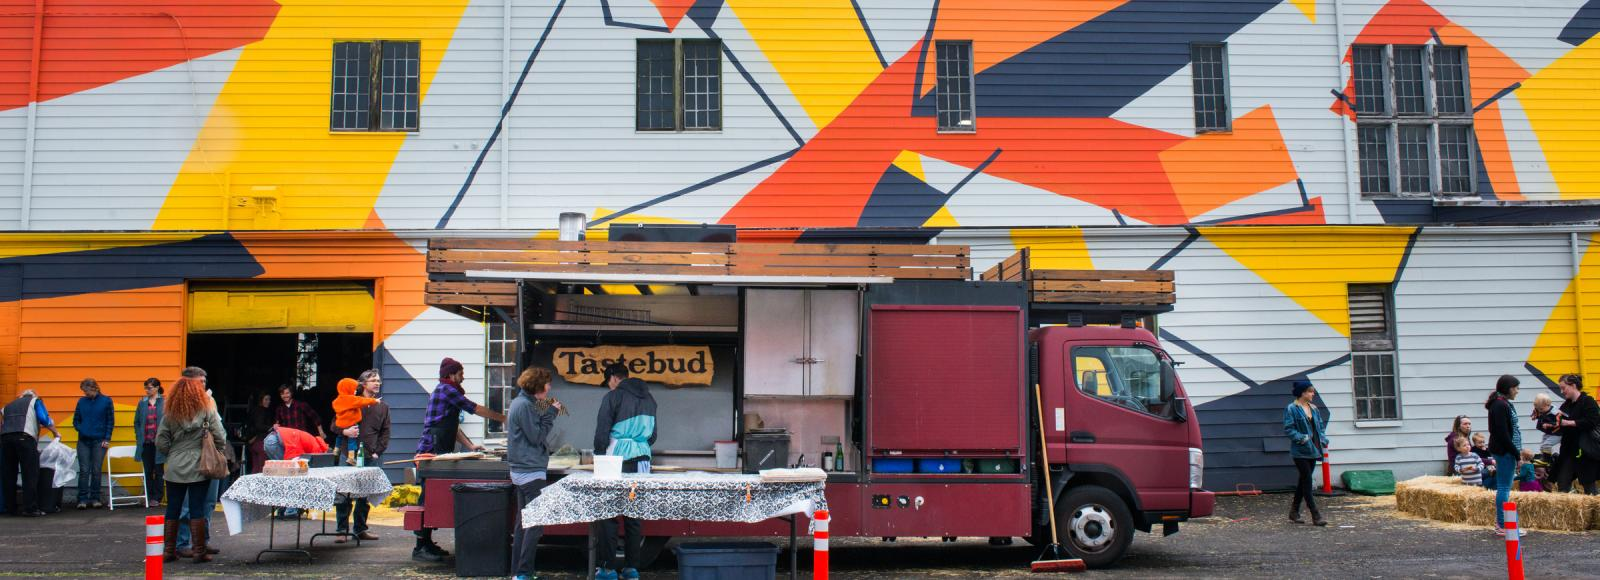 The Tastebud pizza mobile parked outside the Redd. The bright mural on the side of the Redd in full view.